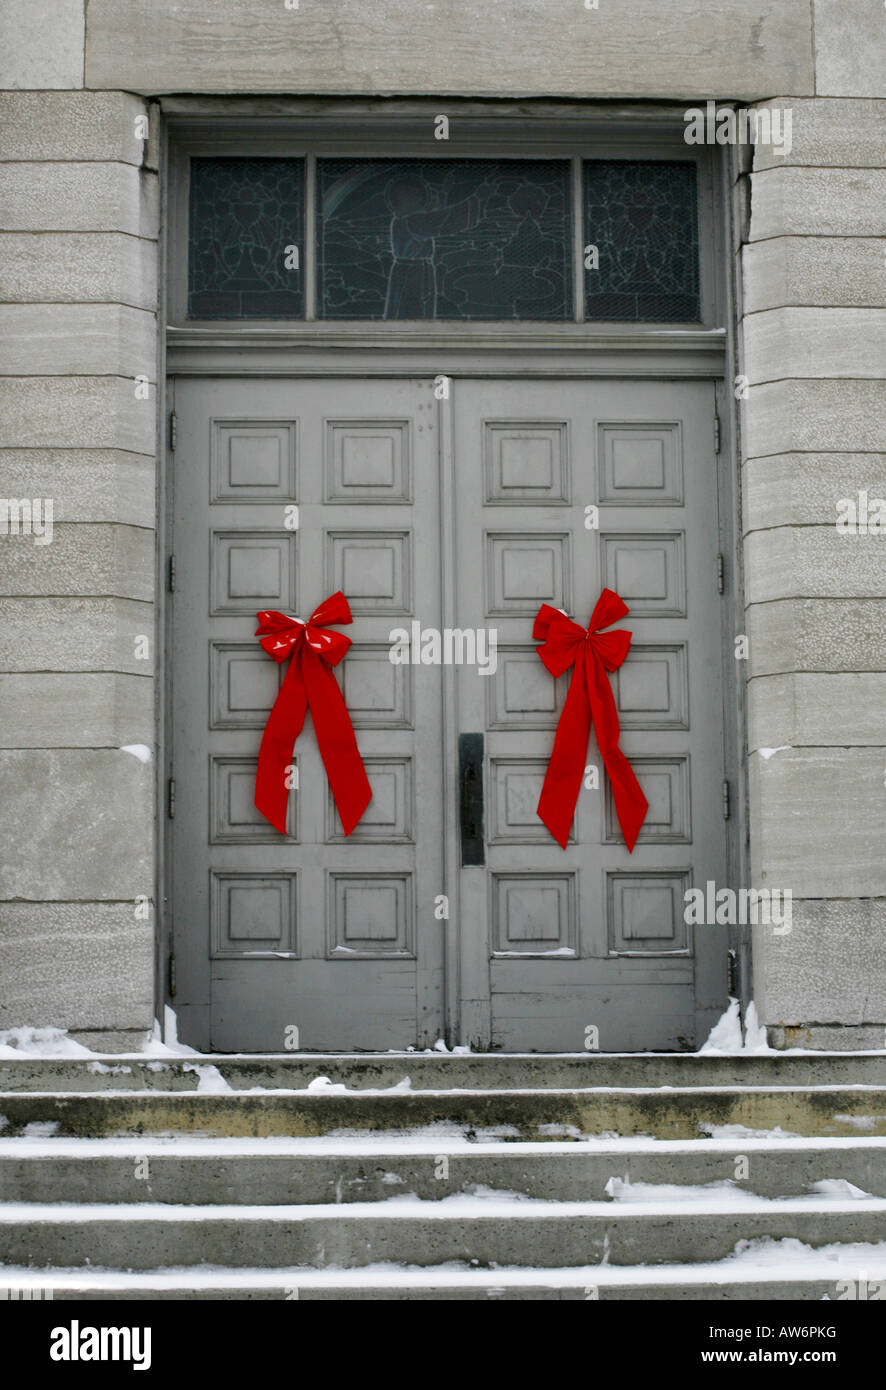 Red bows on doors of a grey building, Waterloo, Quebec - Stock Image